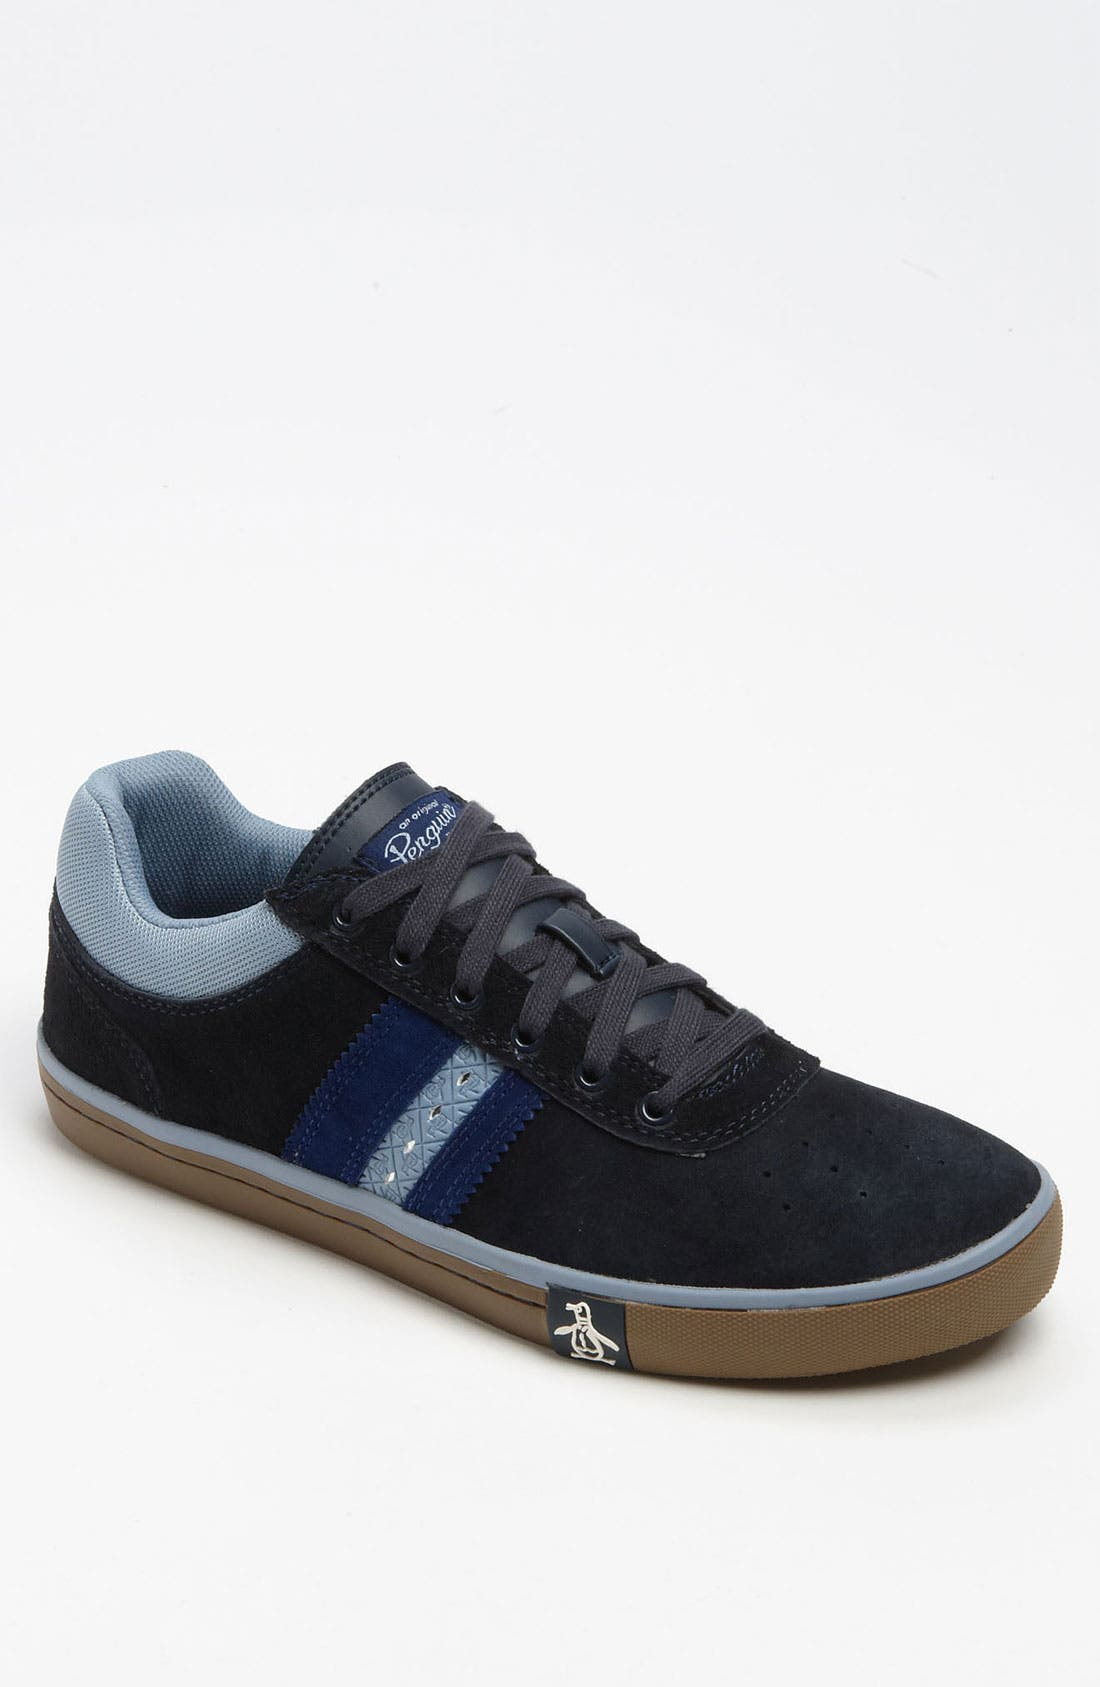 Alternate Image 1 Selected - Original Penguin 'Melt' Sneaker